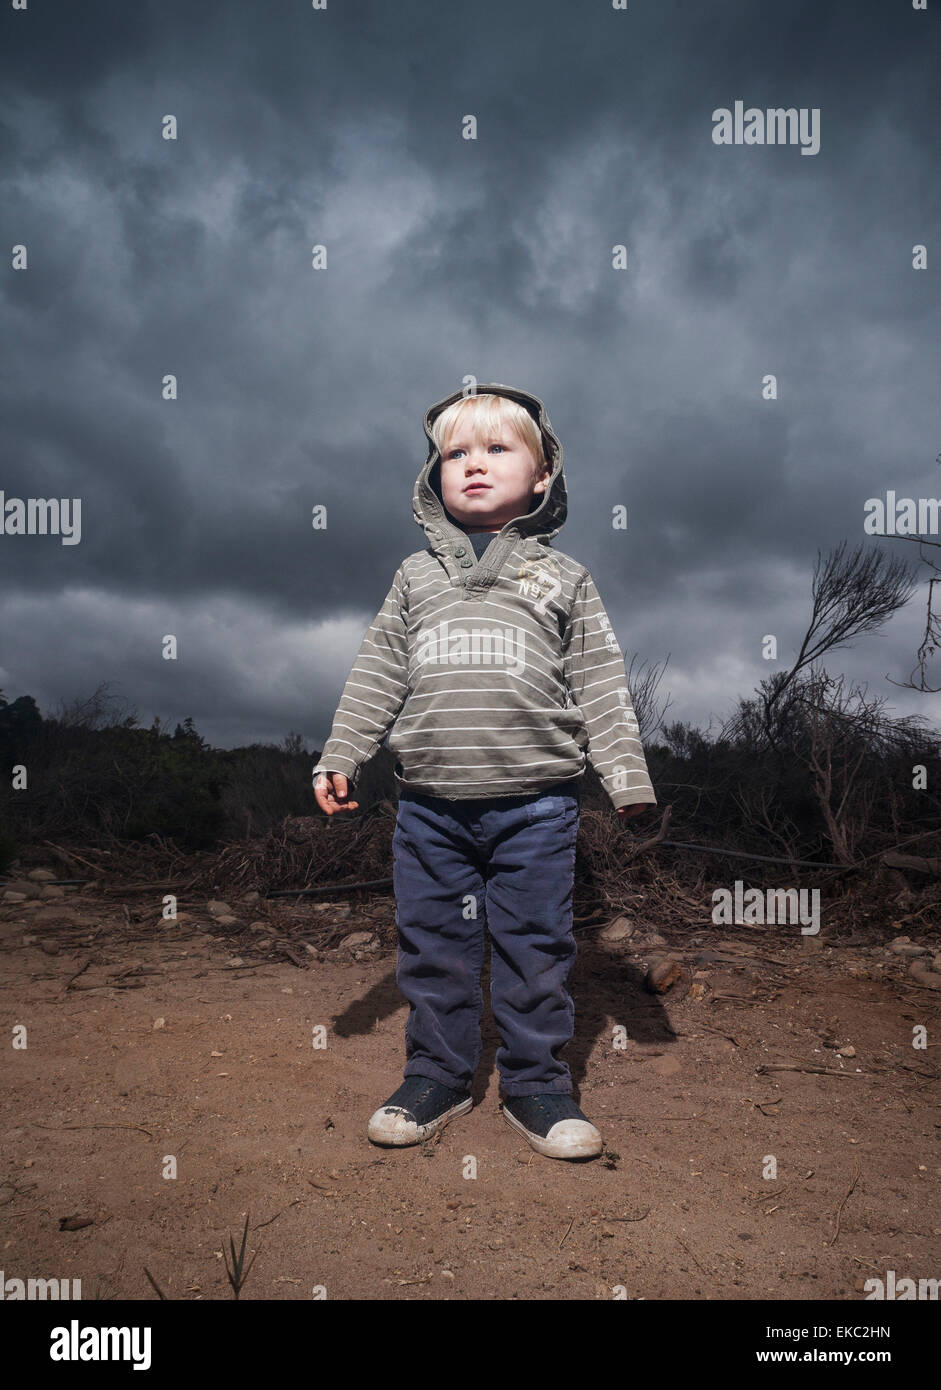 Young boy standing against stormy sky - Stock Image